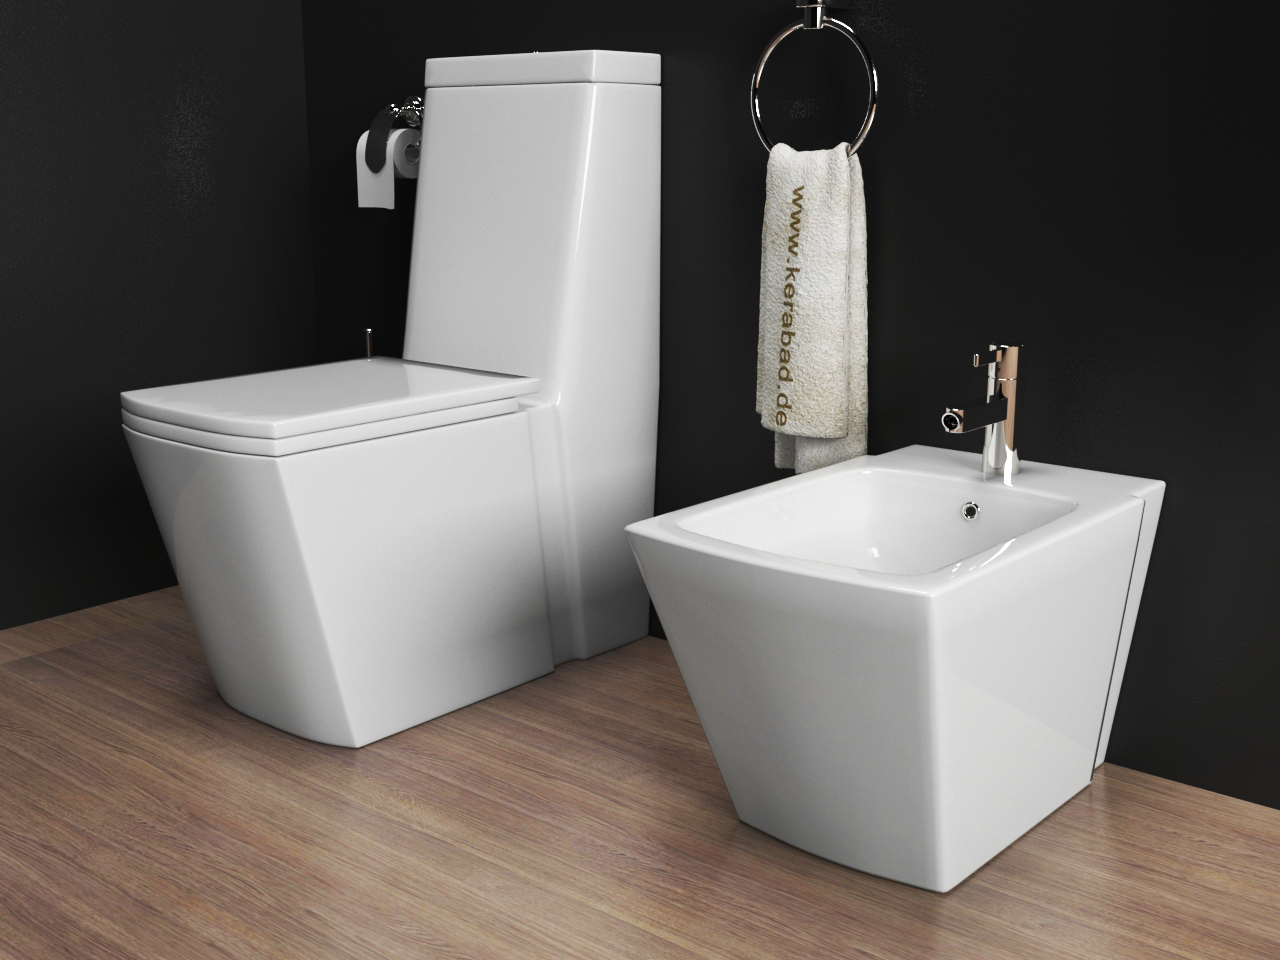 stand wc stand bidet wc sitz kombination kb398 ebay. Black Bedroom Furniture Sets. Home Design Ideas